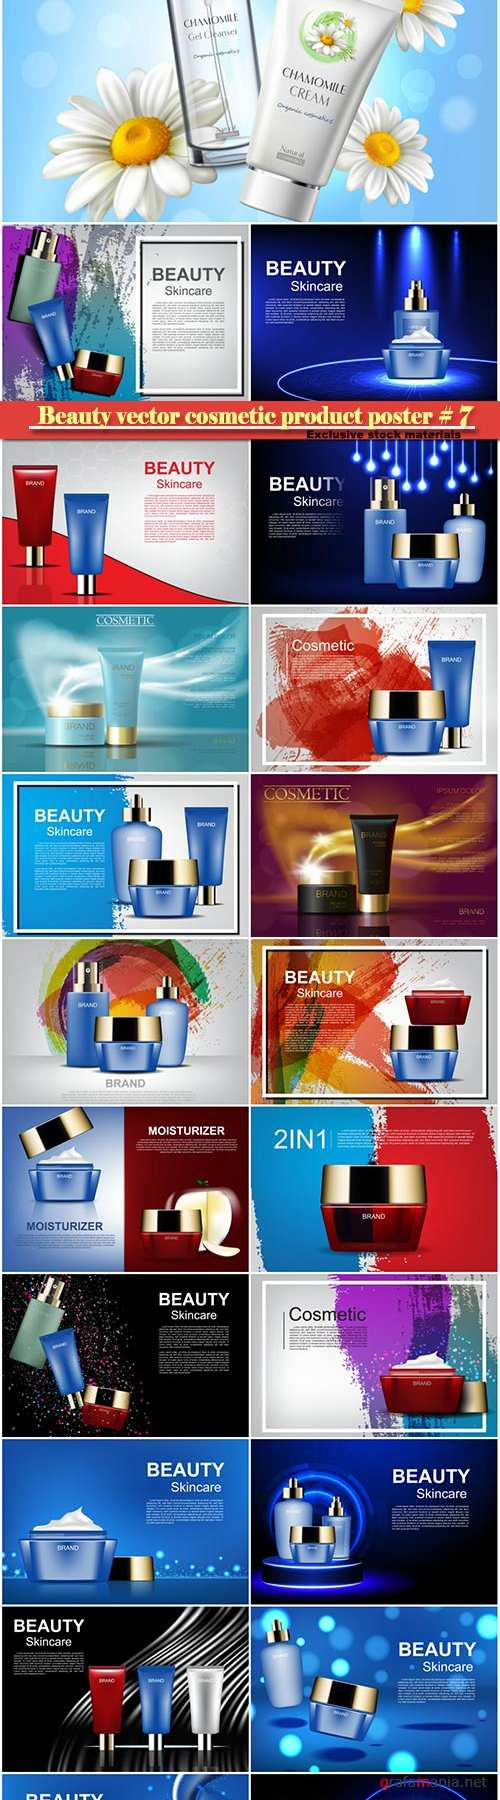 Beauty vector cosmetic product poster # 7